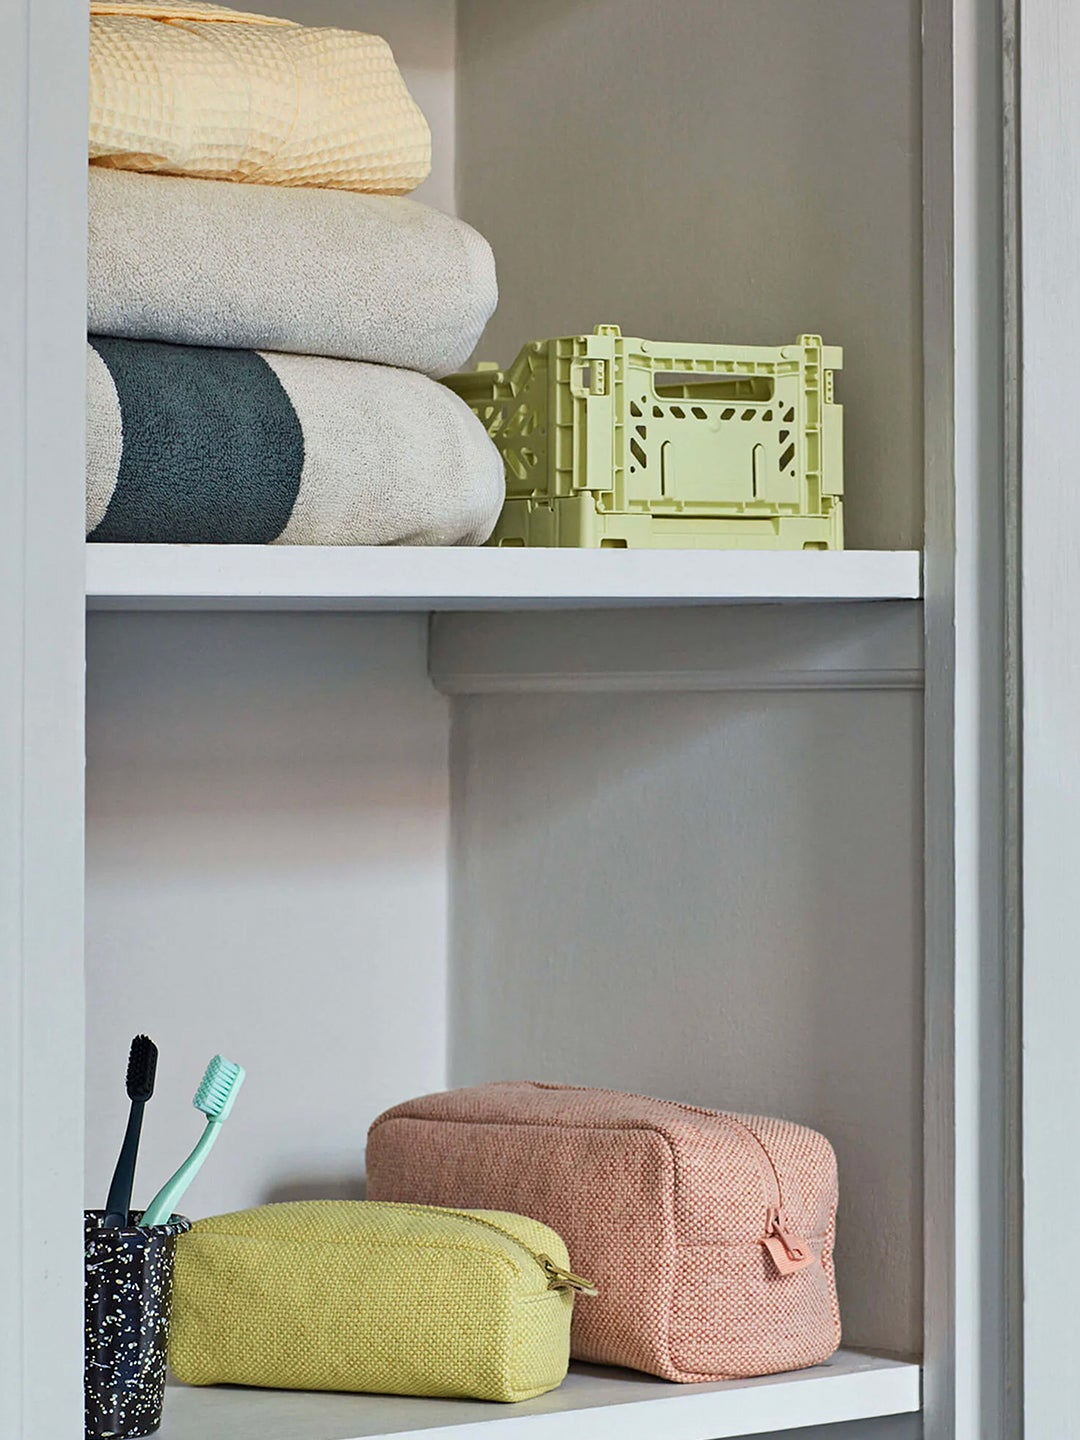 5 Actually Cute Crates for Organizing, Not Climbing